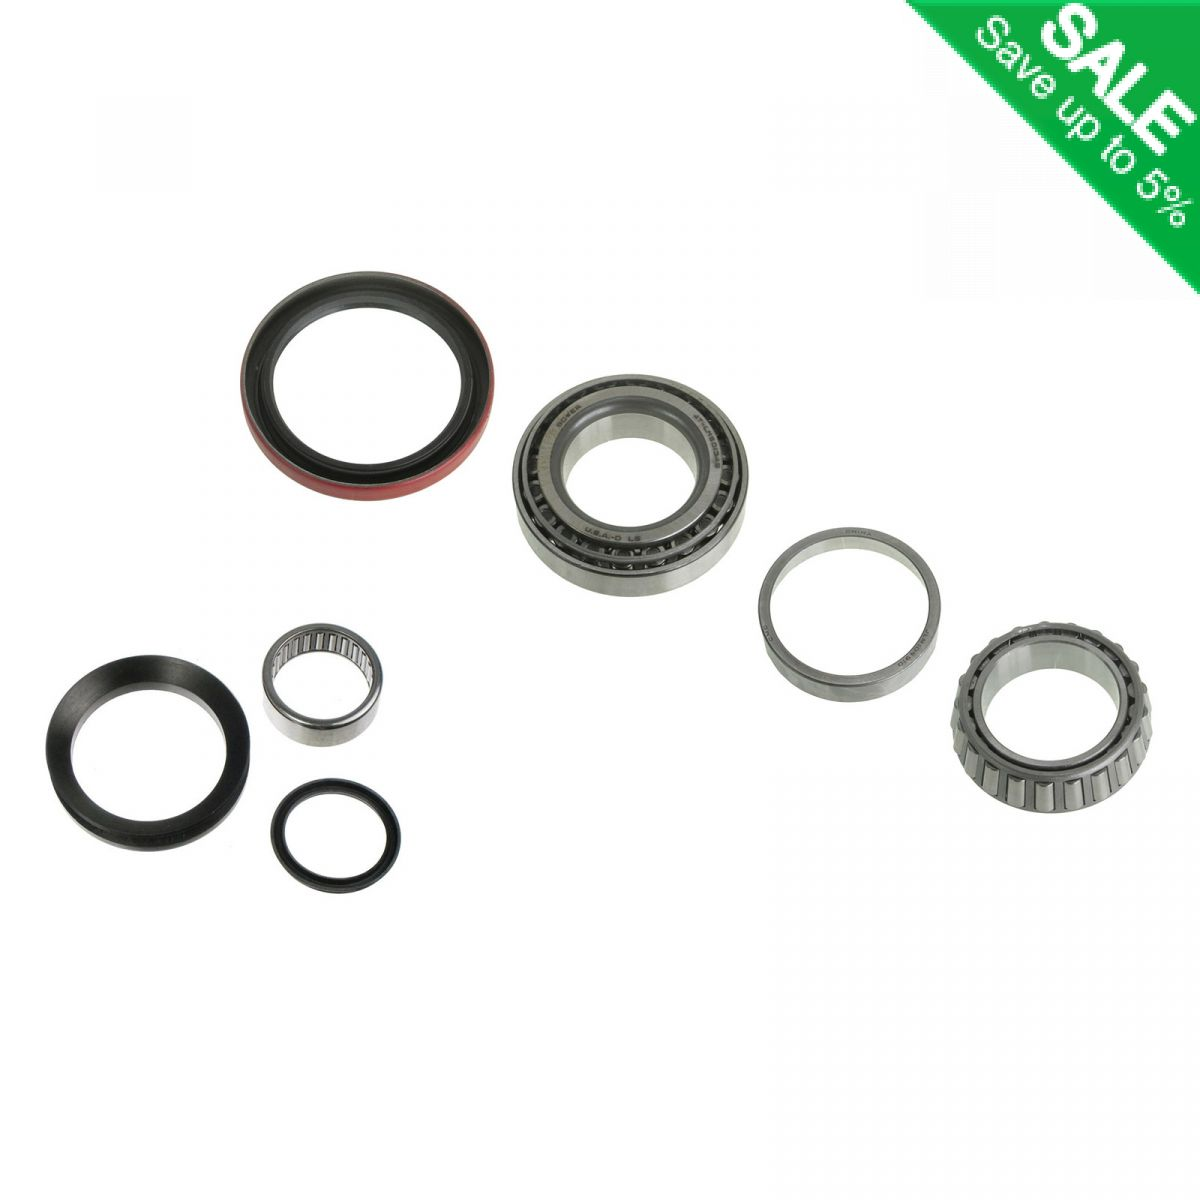 Front Spindle Amp Wheel Bearing Repair Kit For Chevy Gmc